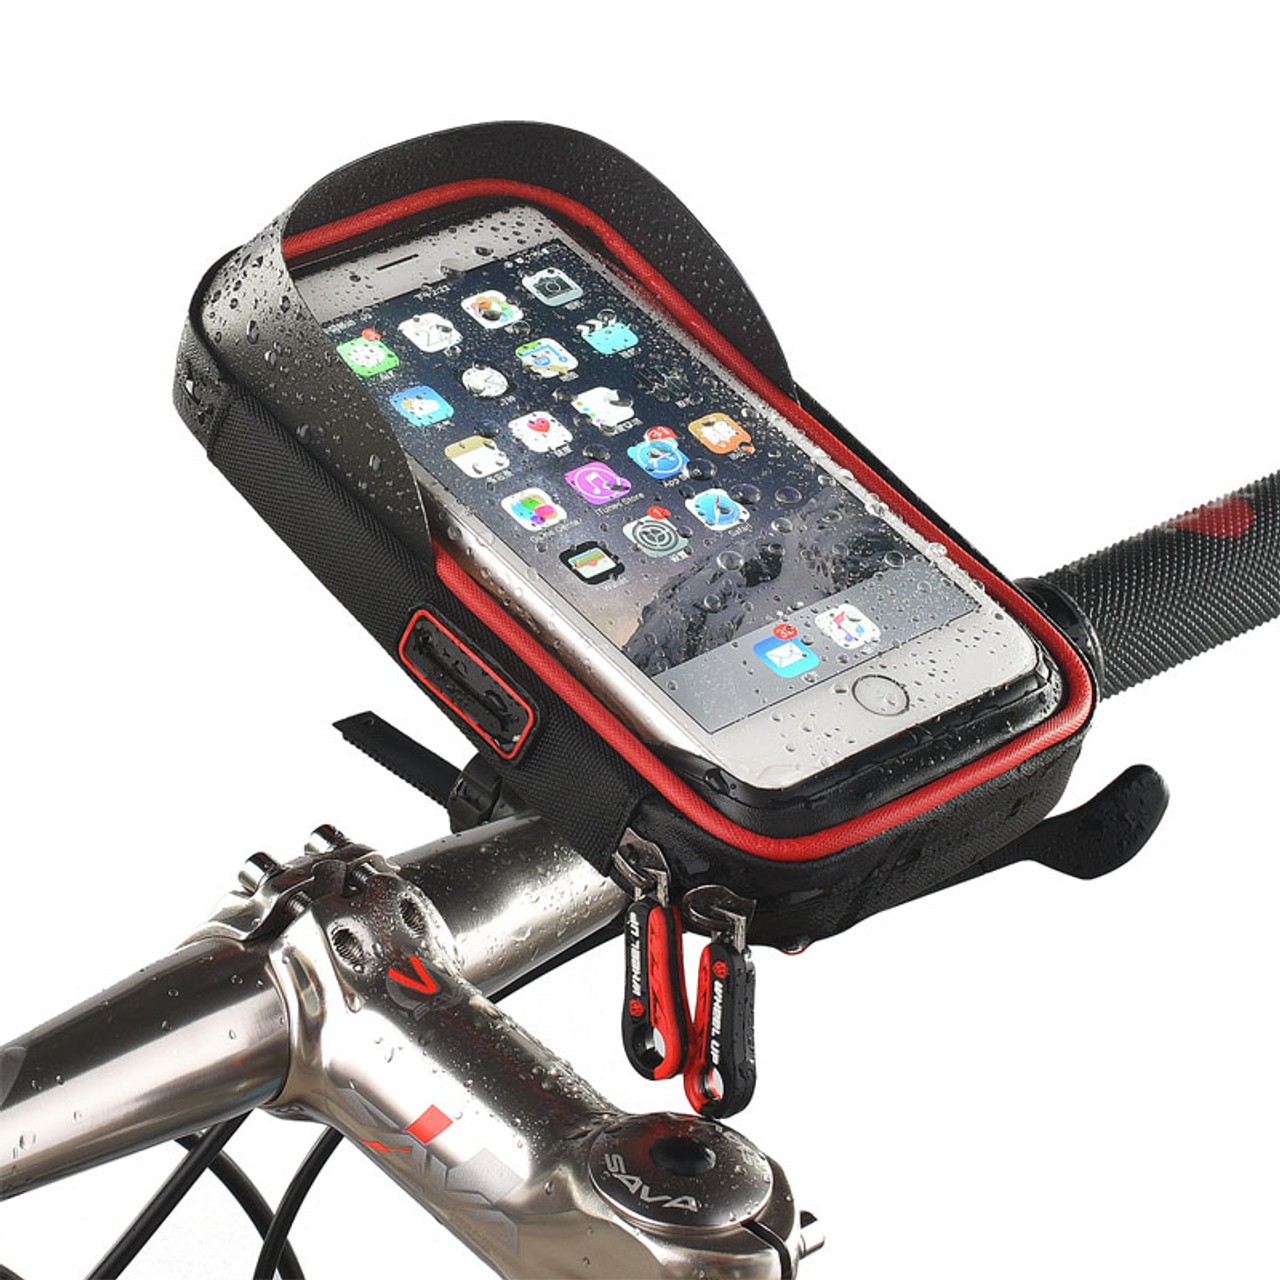 half off d8094 4c520 6 inch Bike Bicycle Waterproof Cell Phone Bag Holder Motorcycle Mount for  Samsung galaxy s8 plus/iPhone 7 plus/LG V20/Mate 9